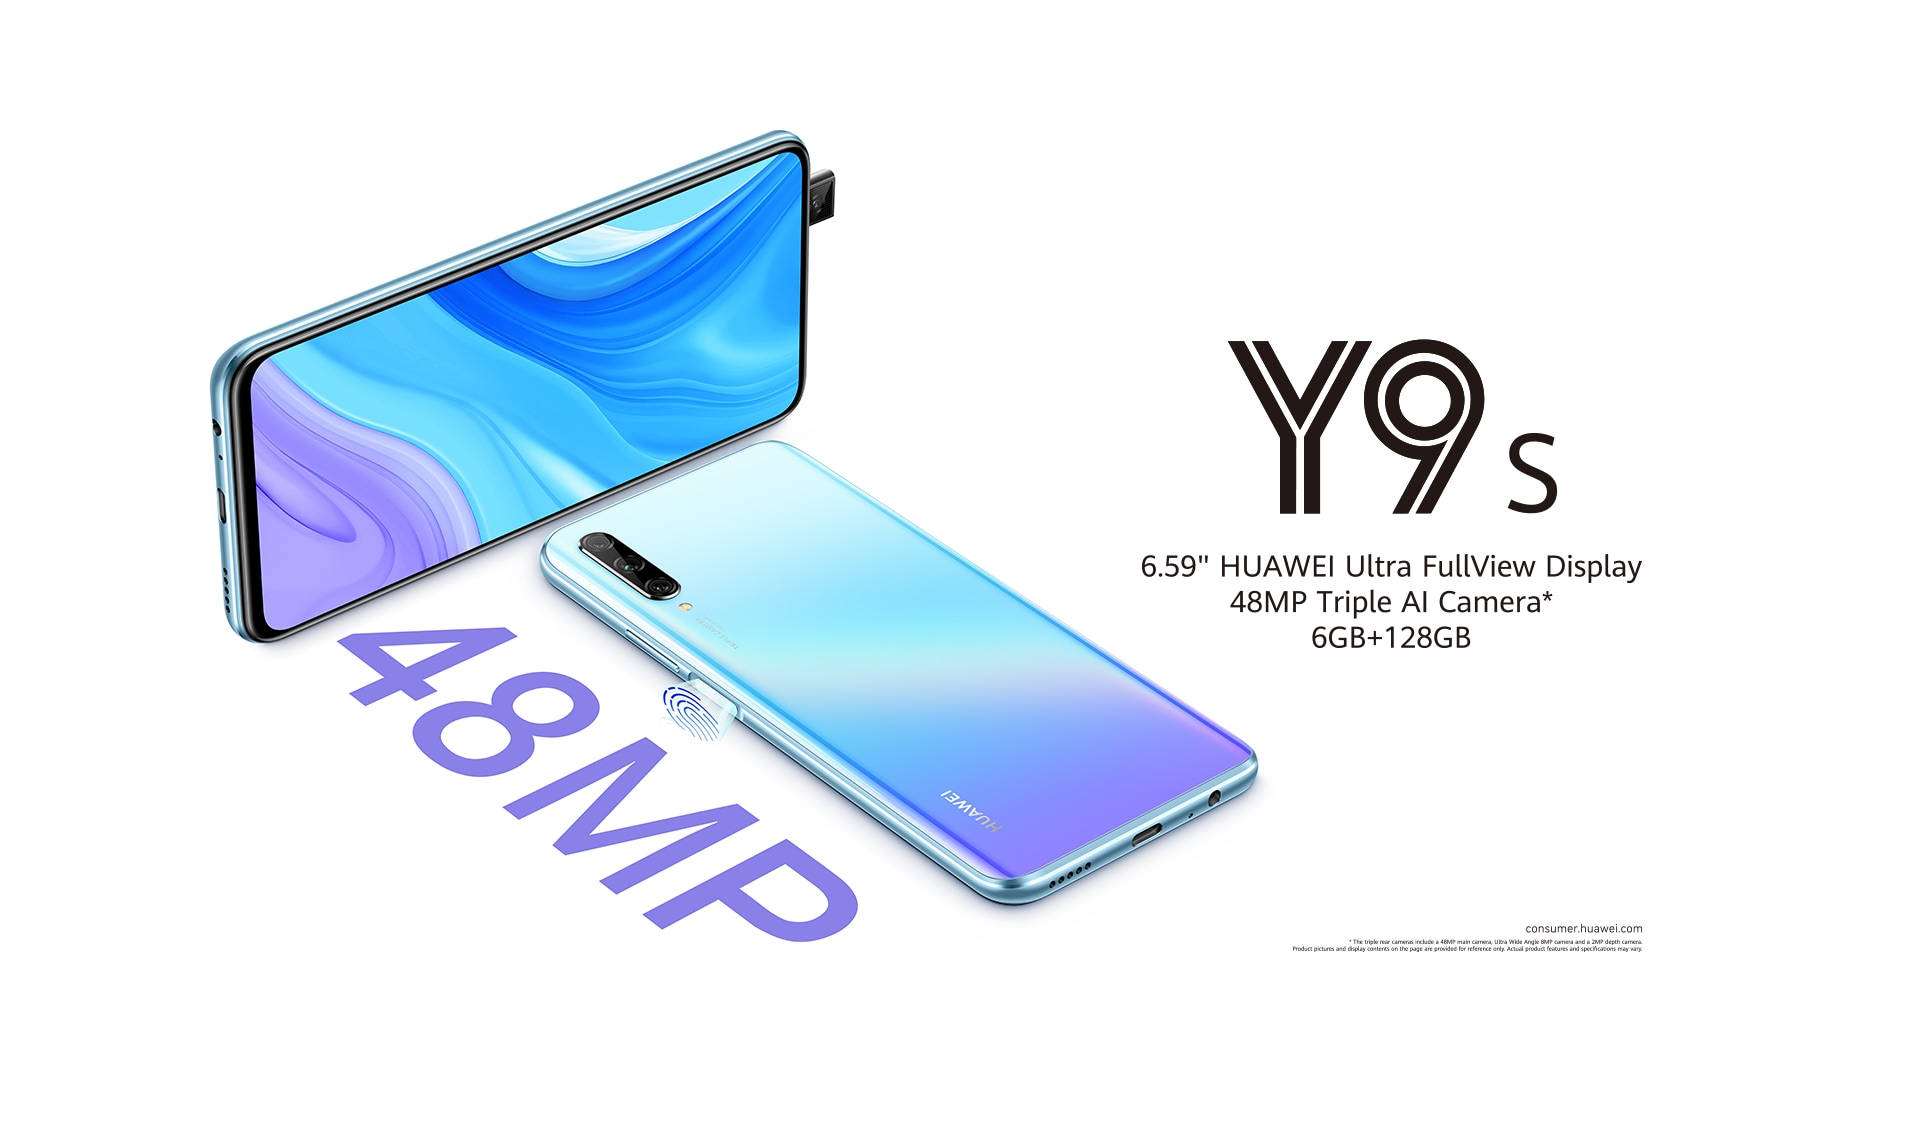 Huawei Y9s Price in Nepal